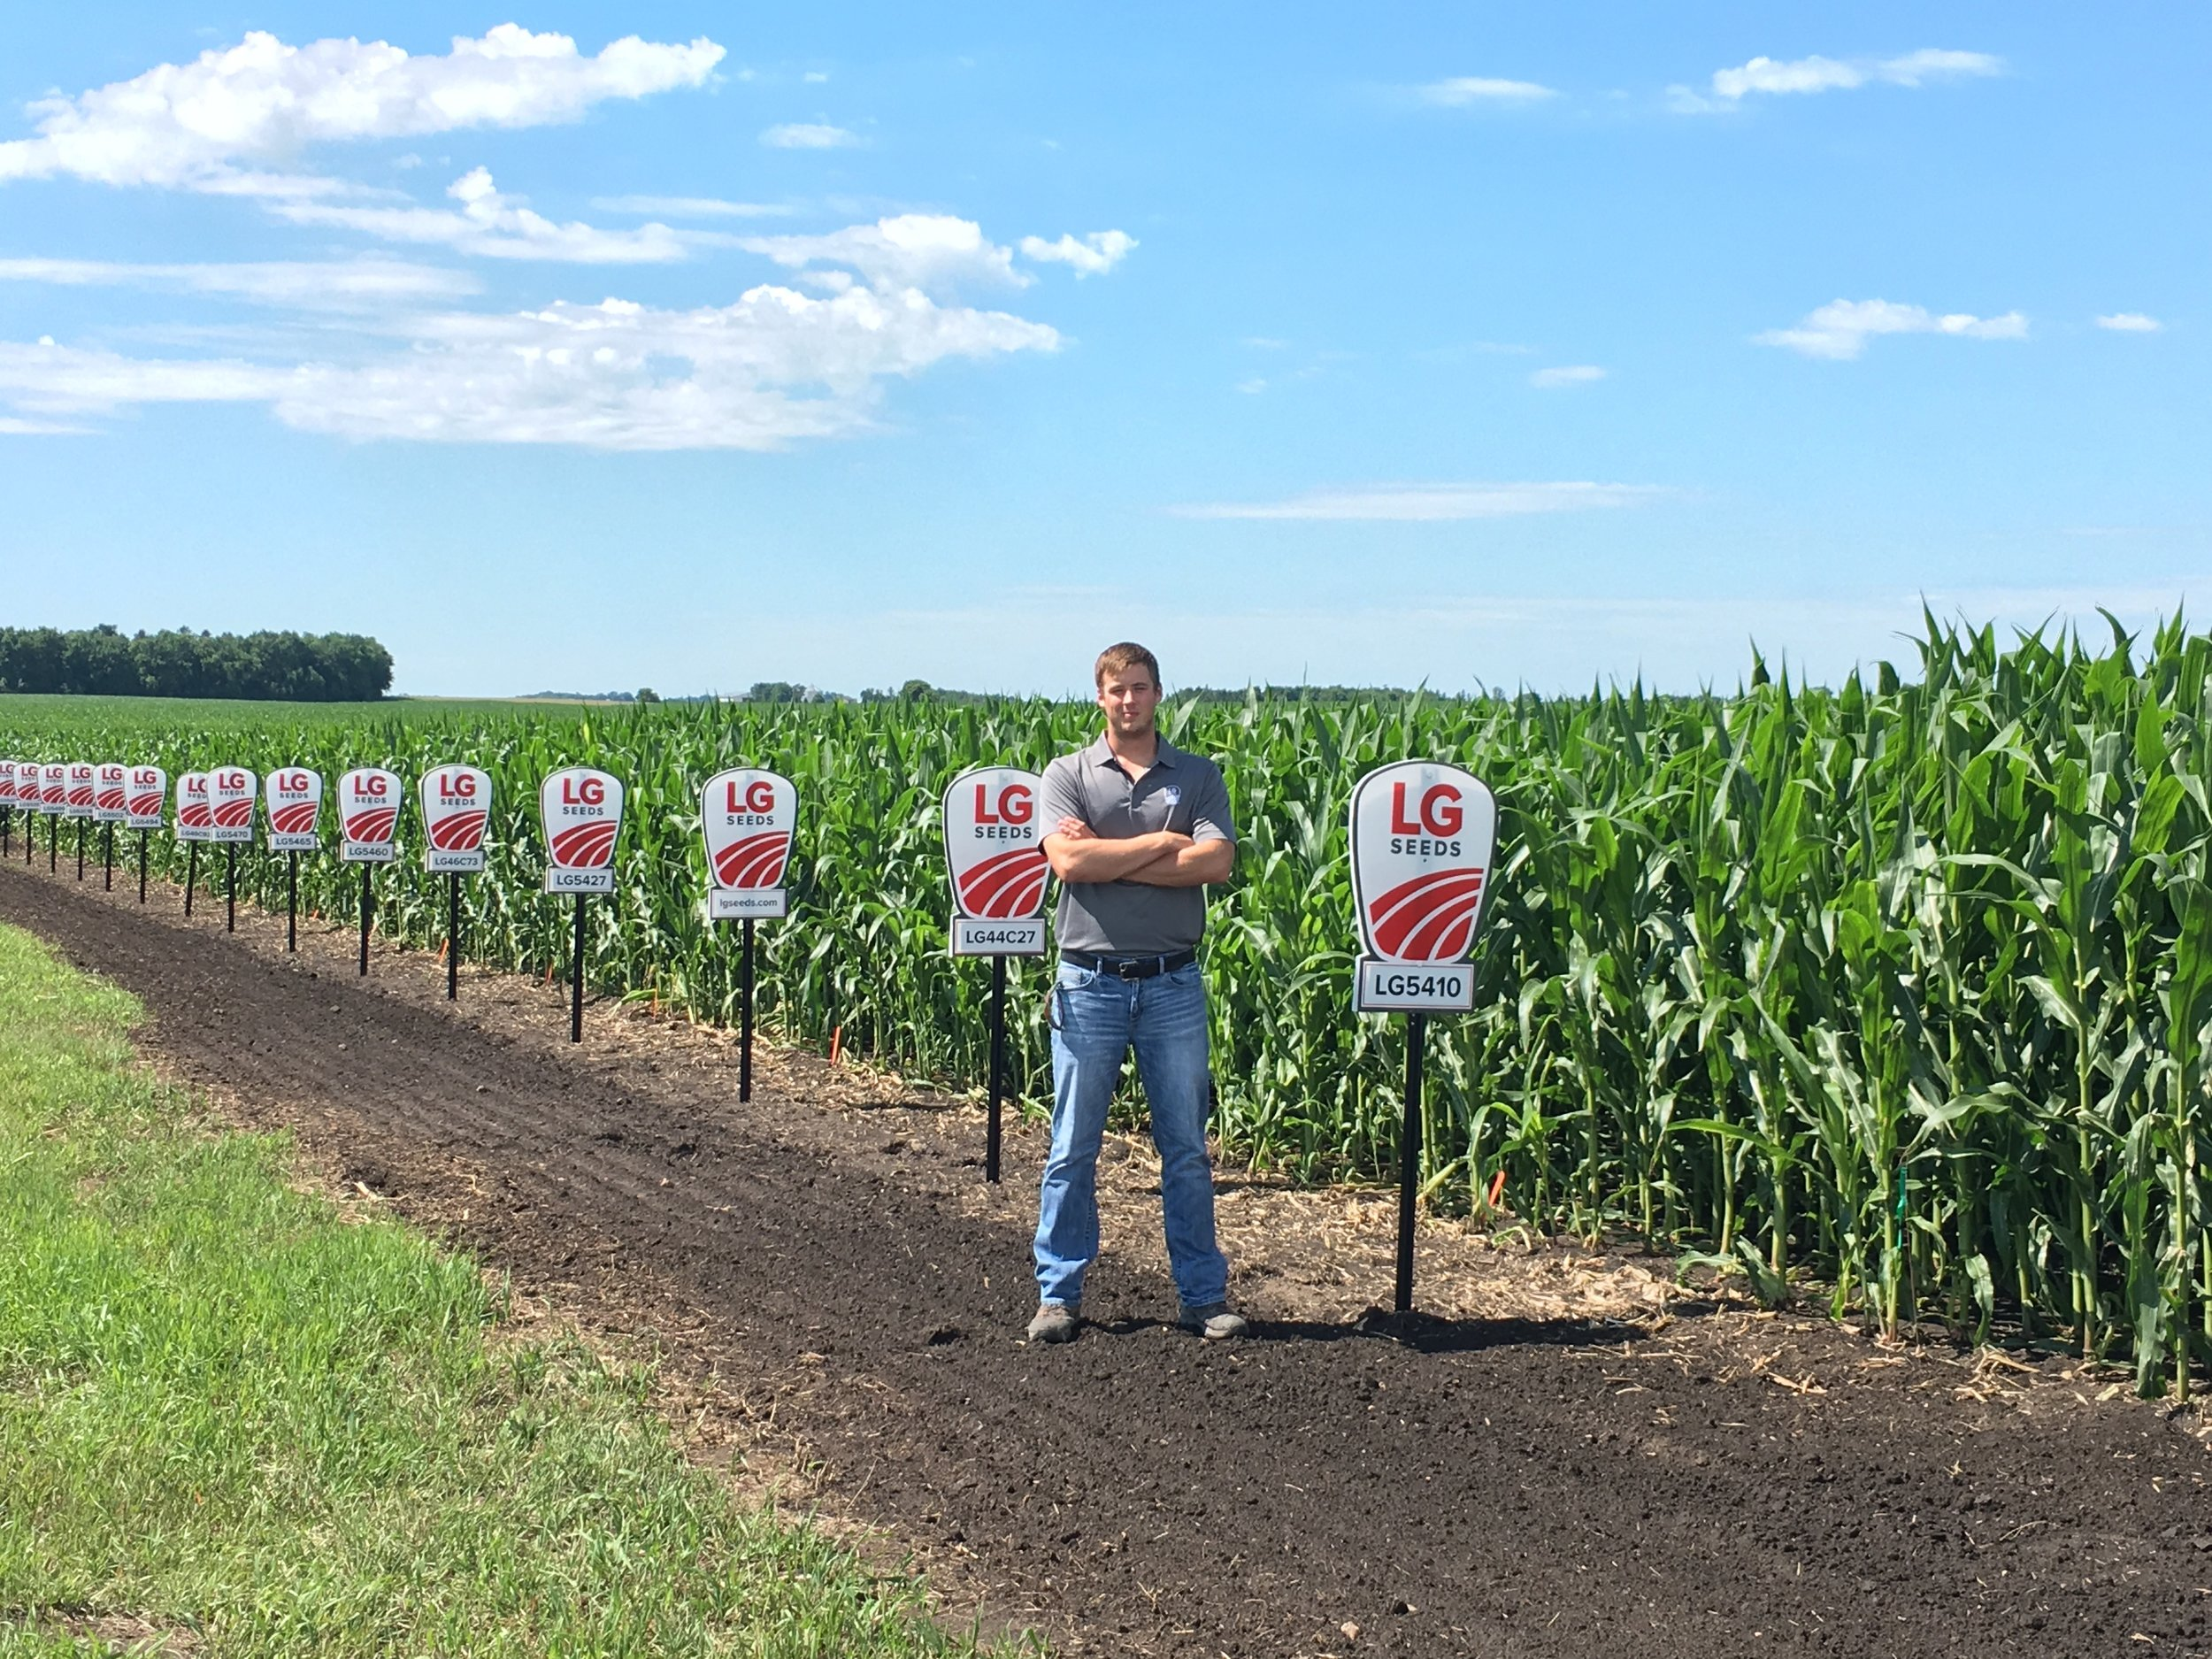 PHASE 2: FALL - During the fall, you will sell to 10 growers from your summer prospect list. You will also sign your dealer agreement, utilize the SAM Team to build your business, map and create Seed Plans for 10 fields in Advantage Acre and more.